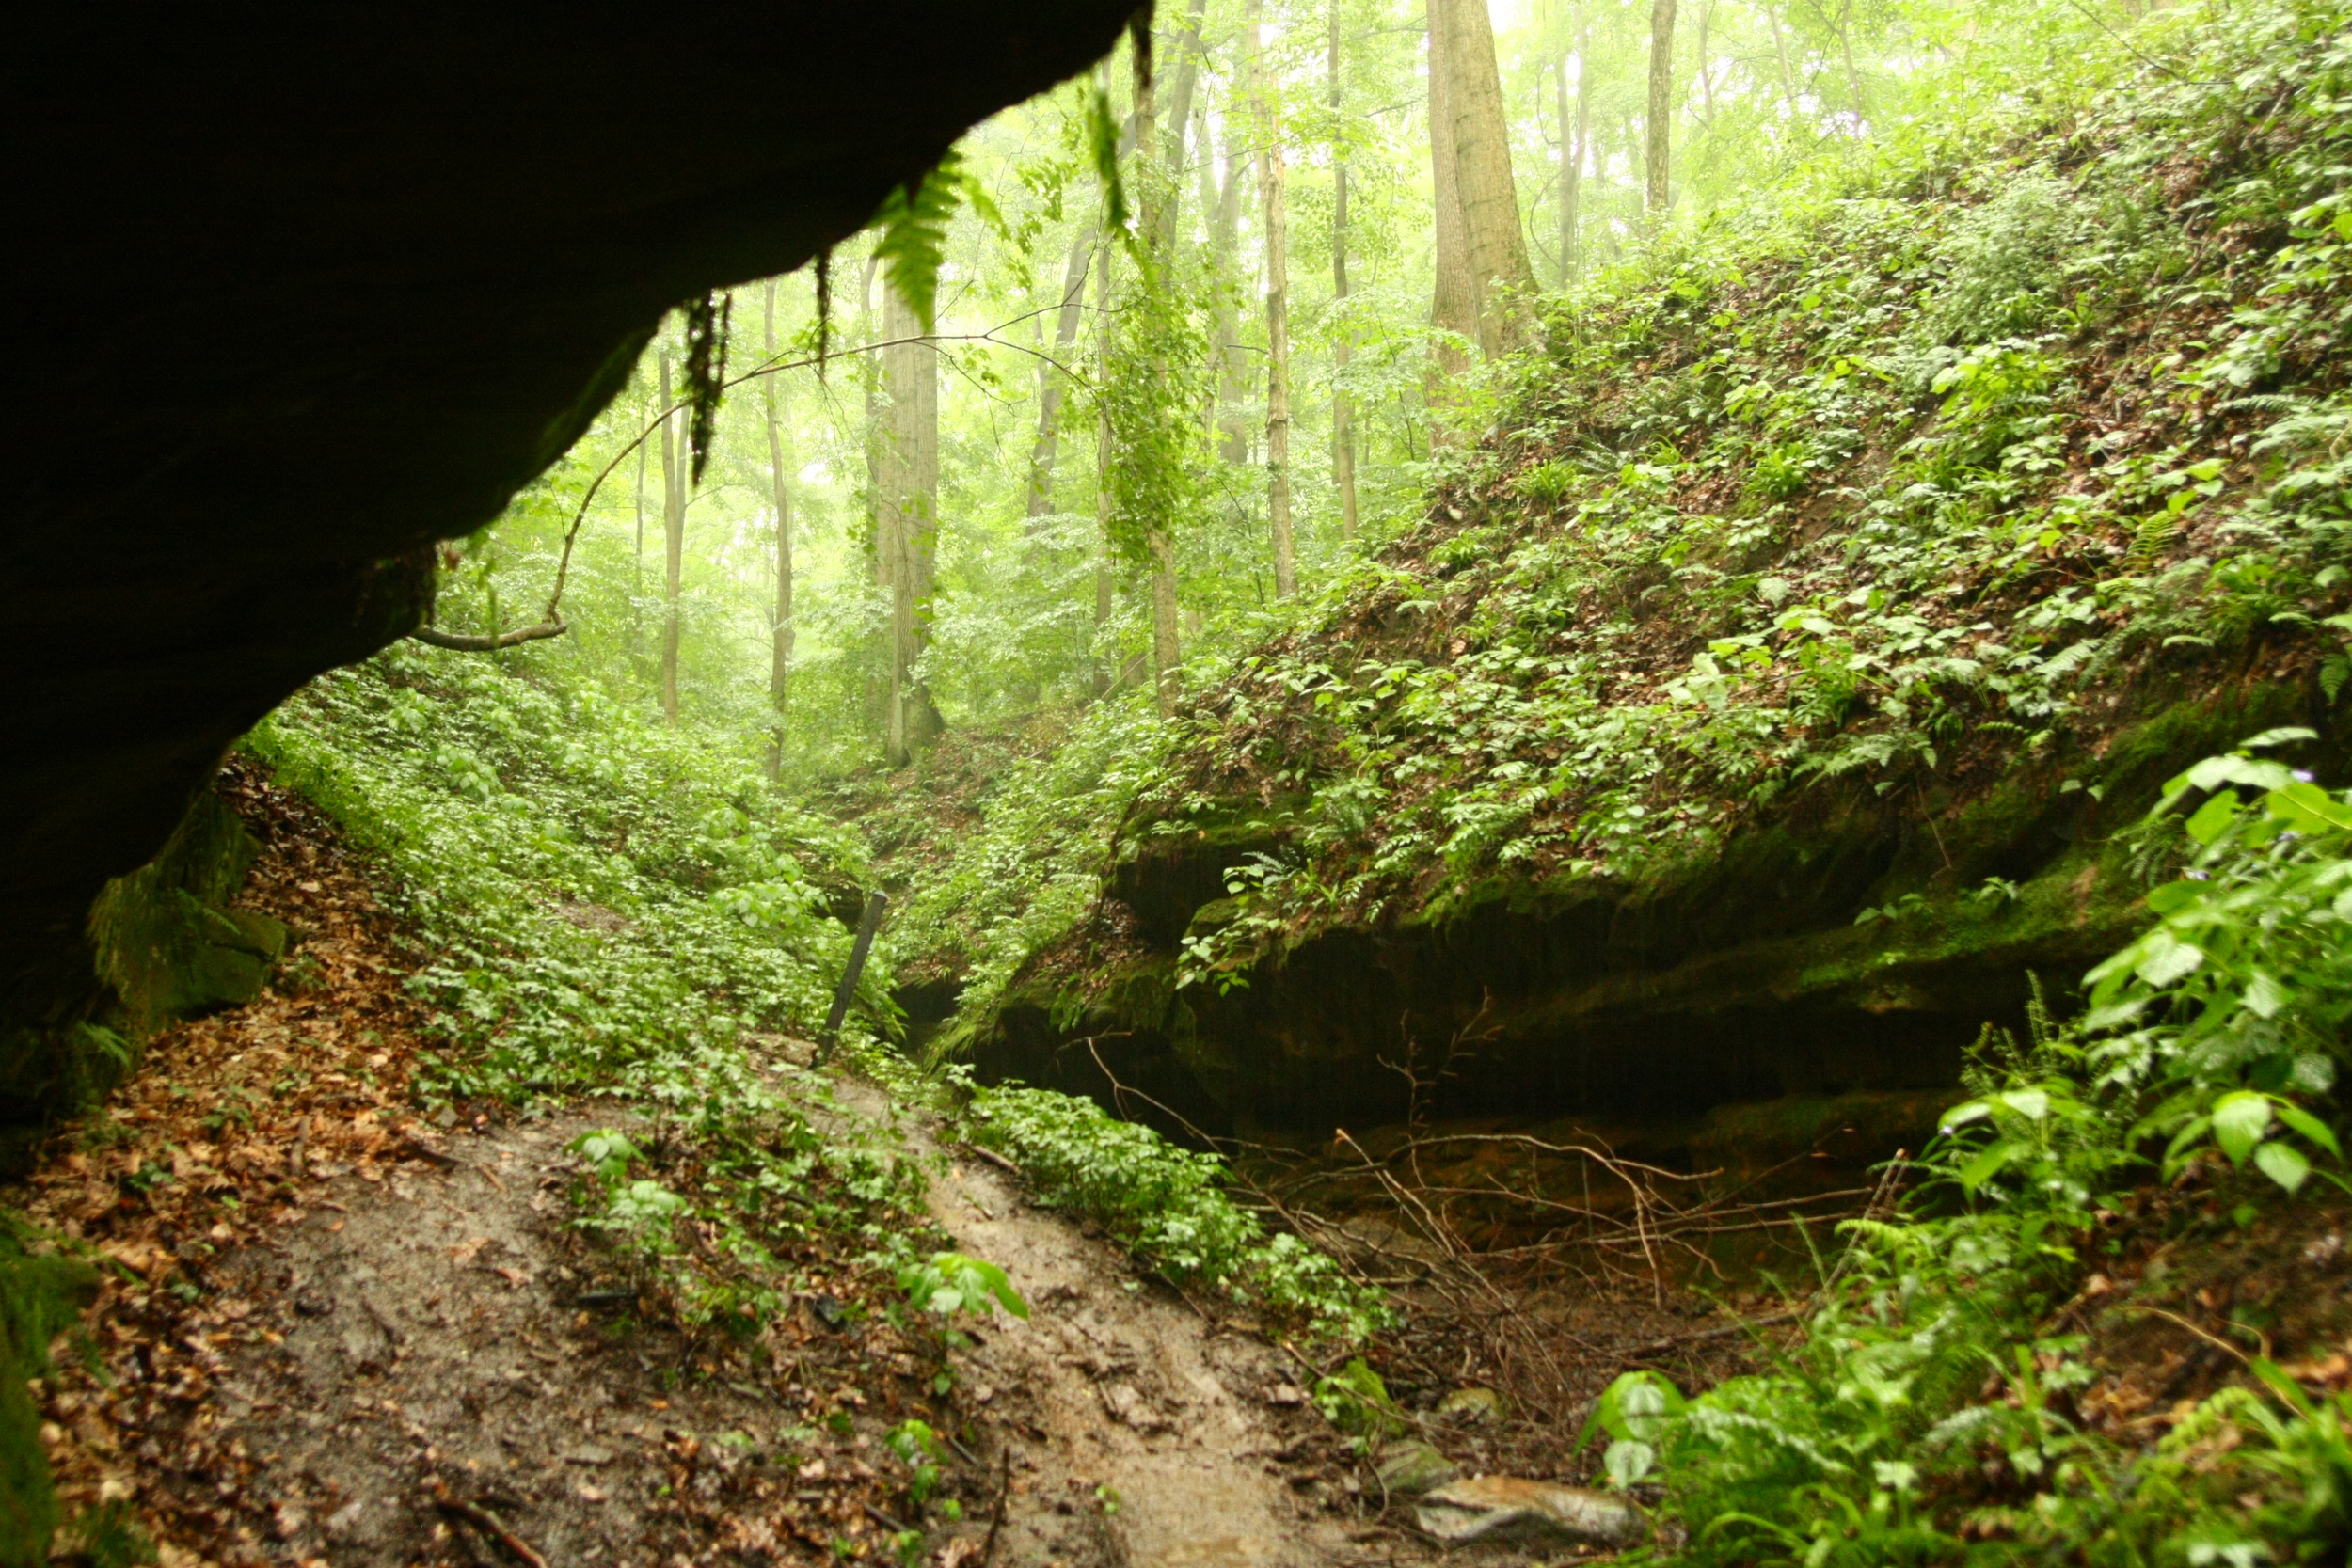 Waiting out the storm in a rock shelter along Trail 4 at Shades State Park.  The rain added an exciting element of adventure to our otherwise routine day hike.